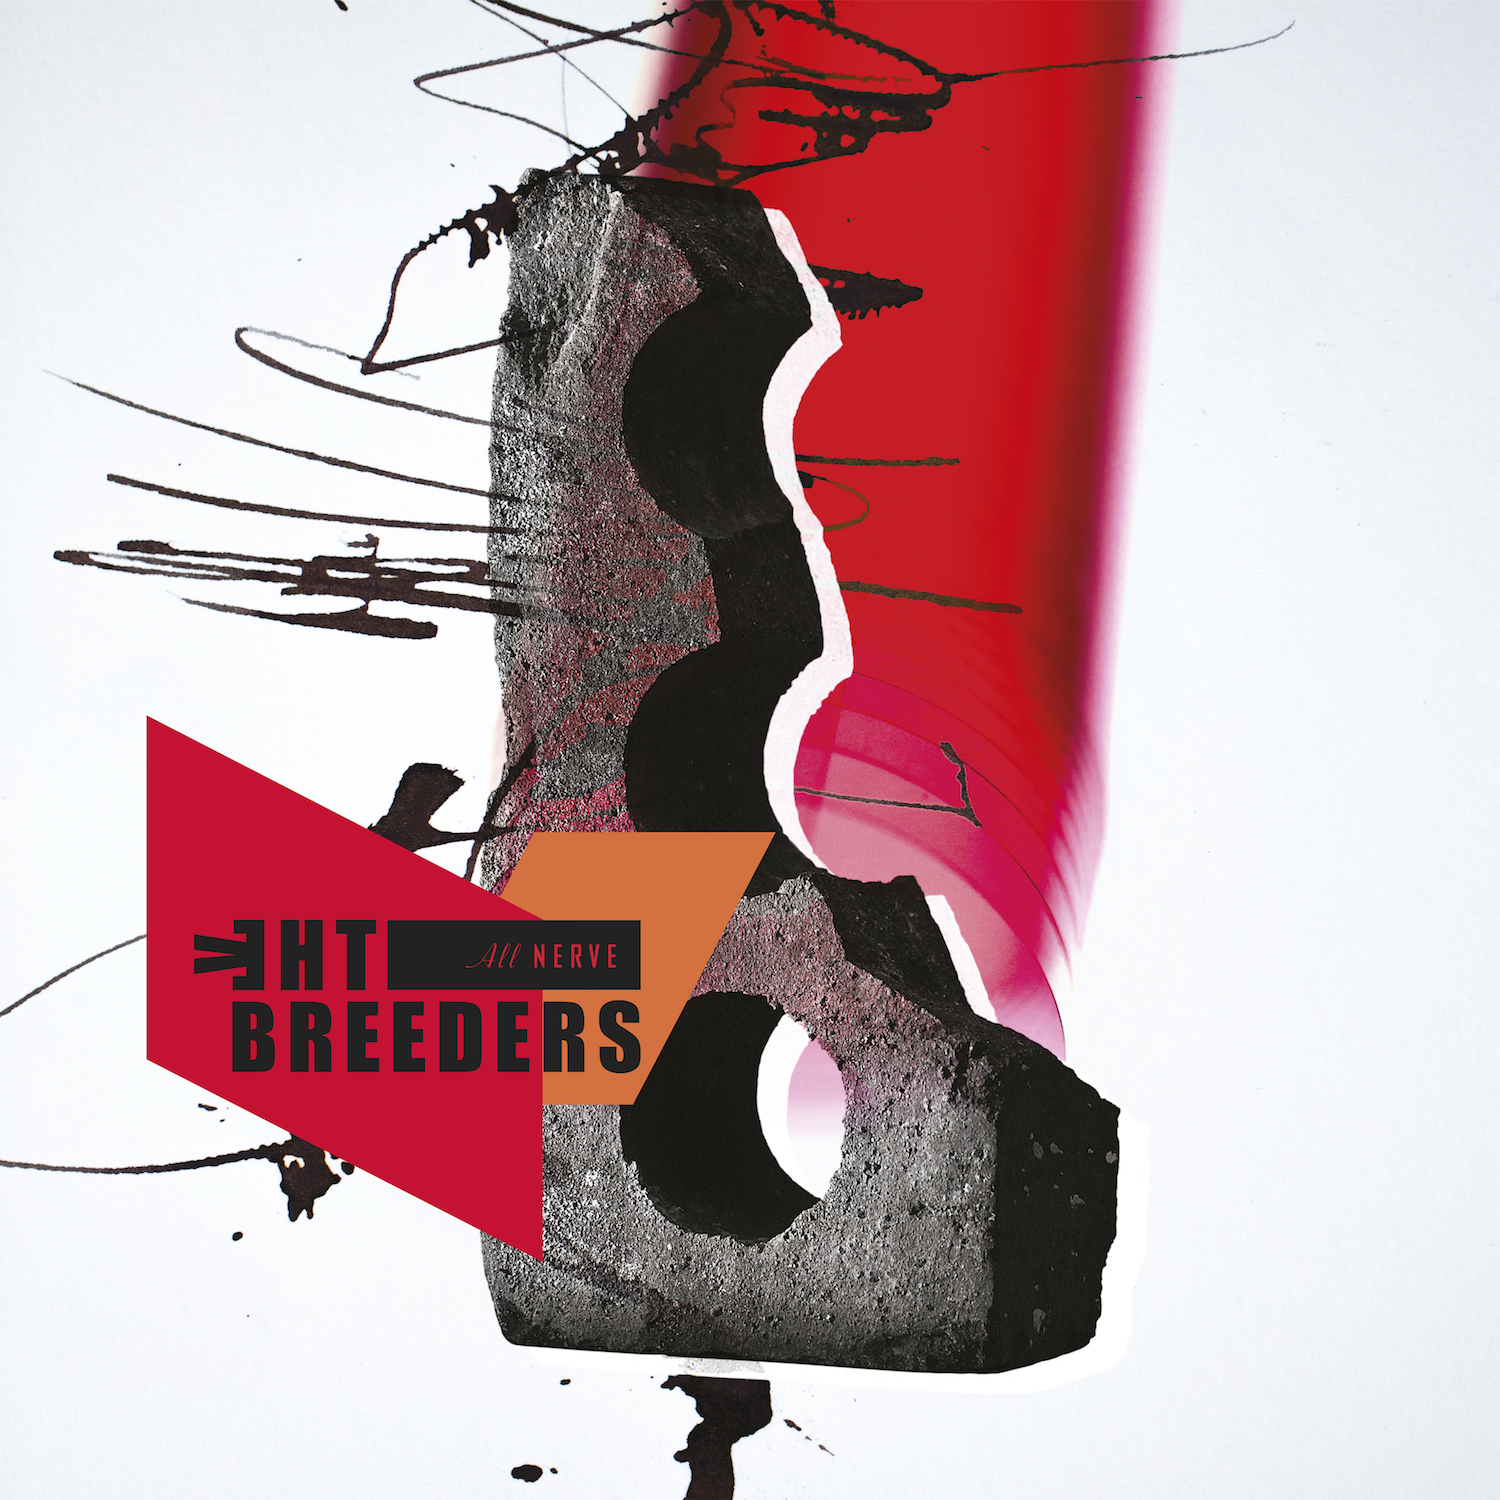 The Breeders – All Nerve (2018)